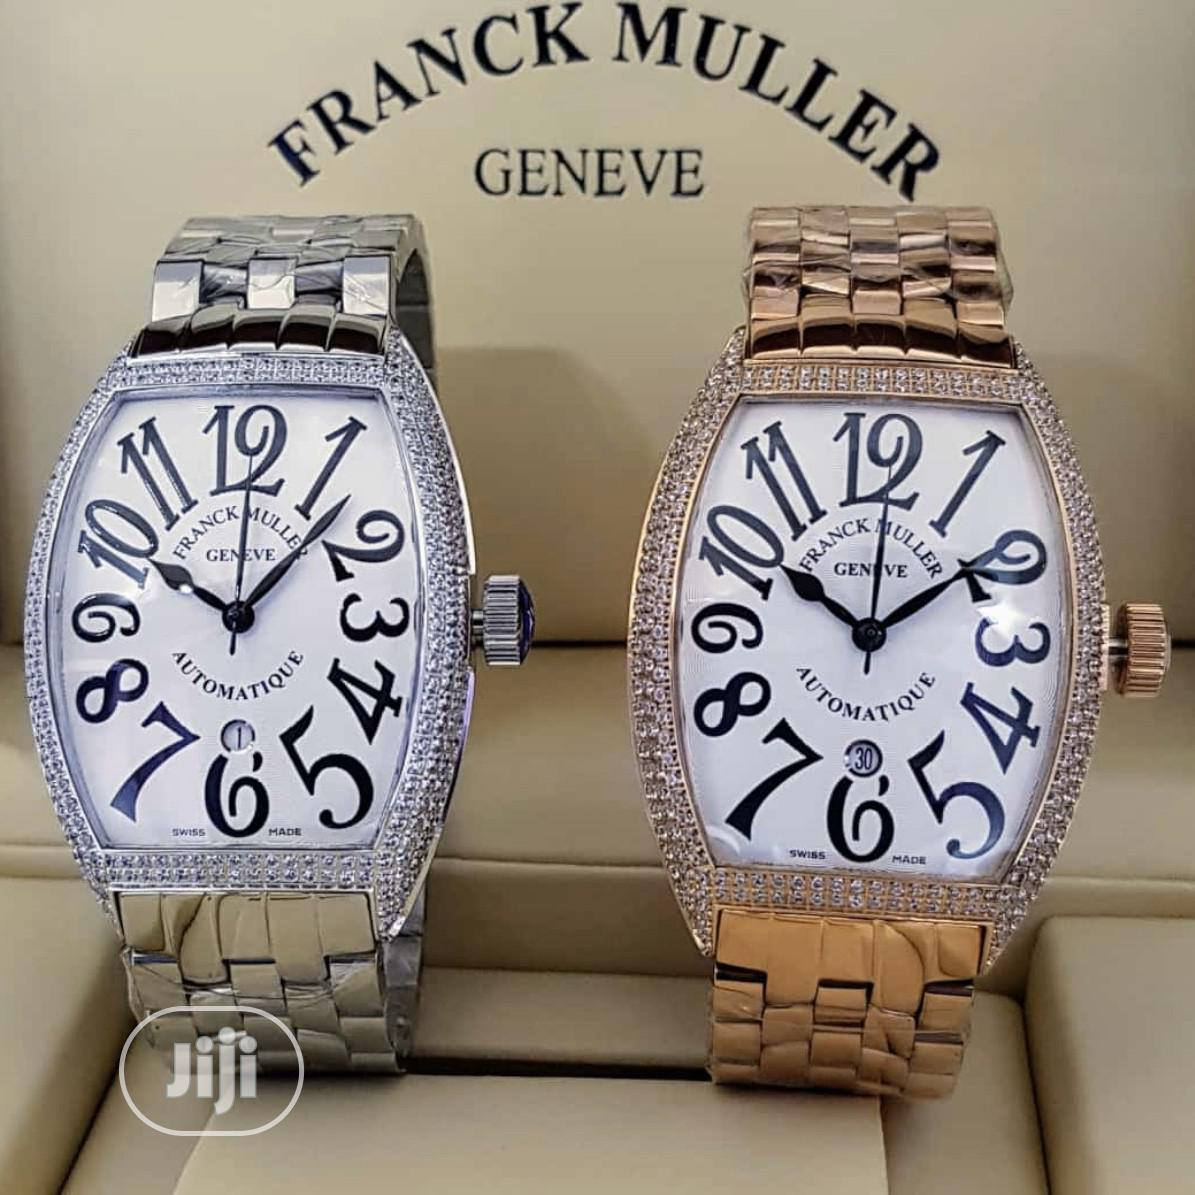 Archive: Franck Muller Gentle Men'S Wrist Watch